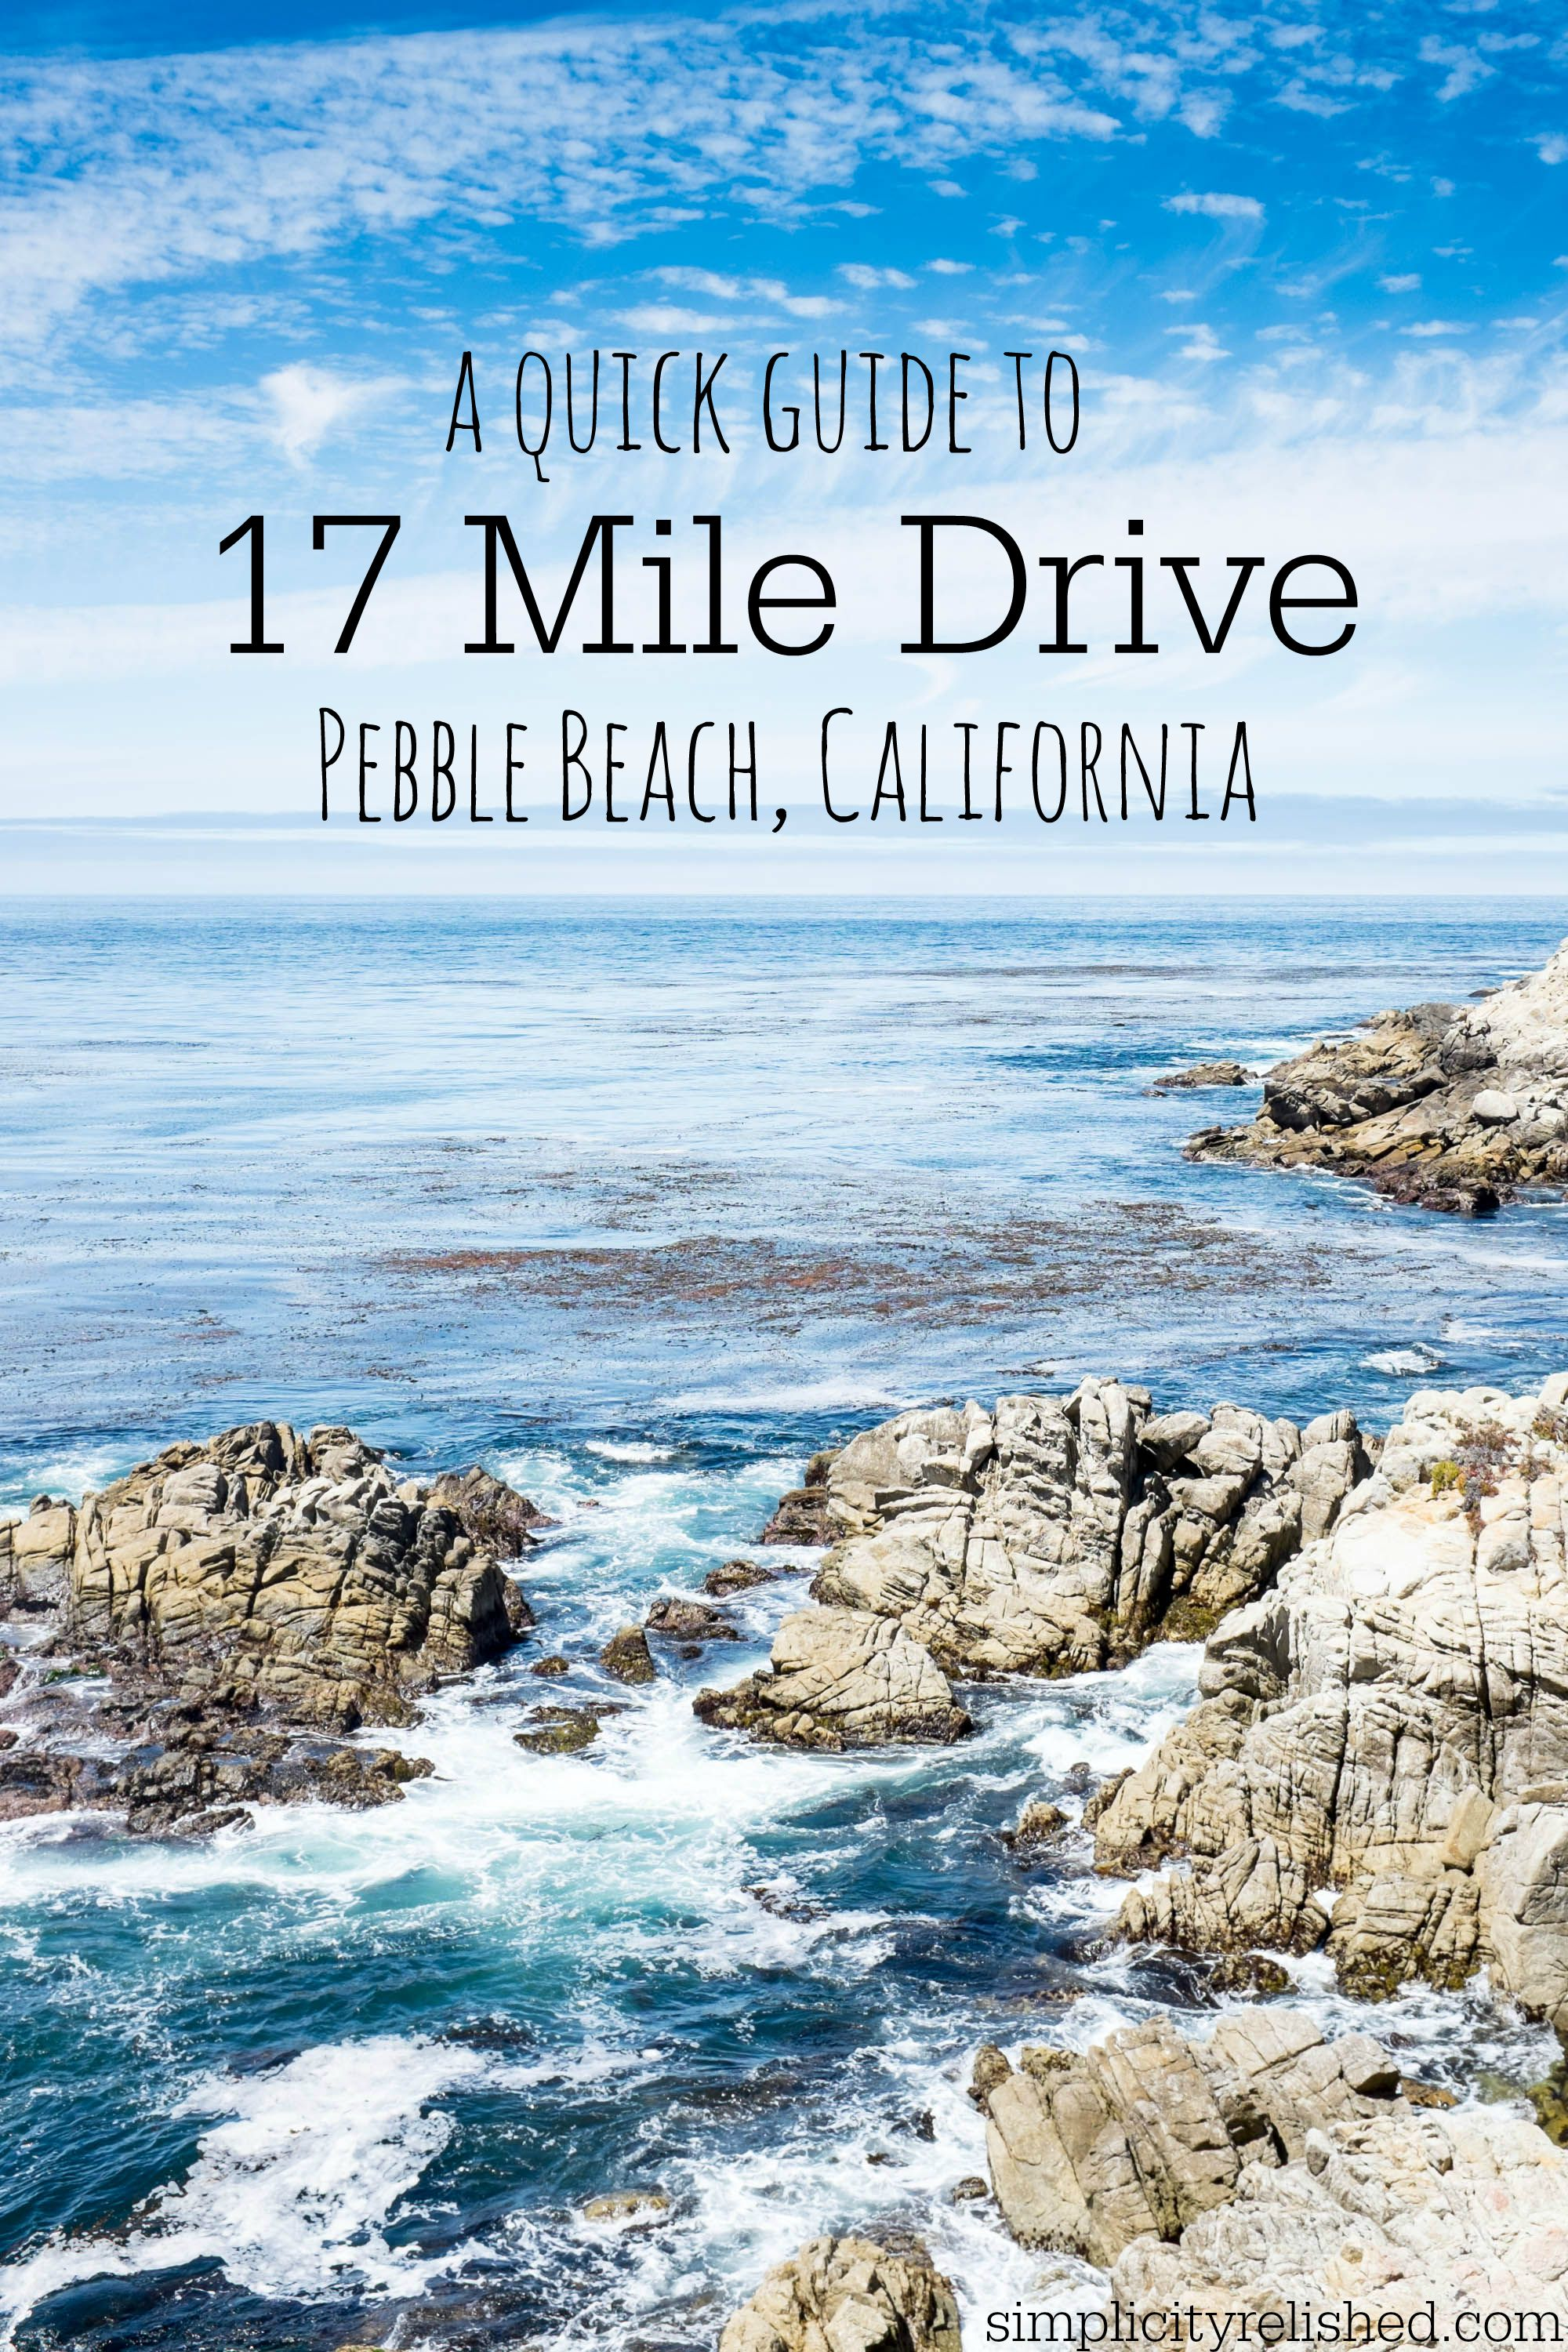 17 Mile Drive Map Pdf A Quick Guide To 17 Mile Drive in Pebble Beach, California